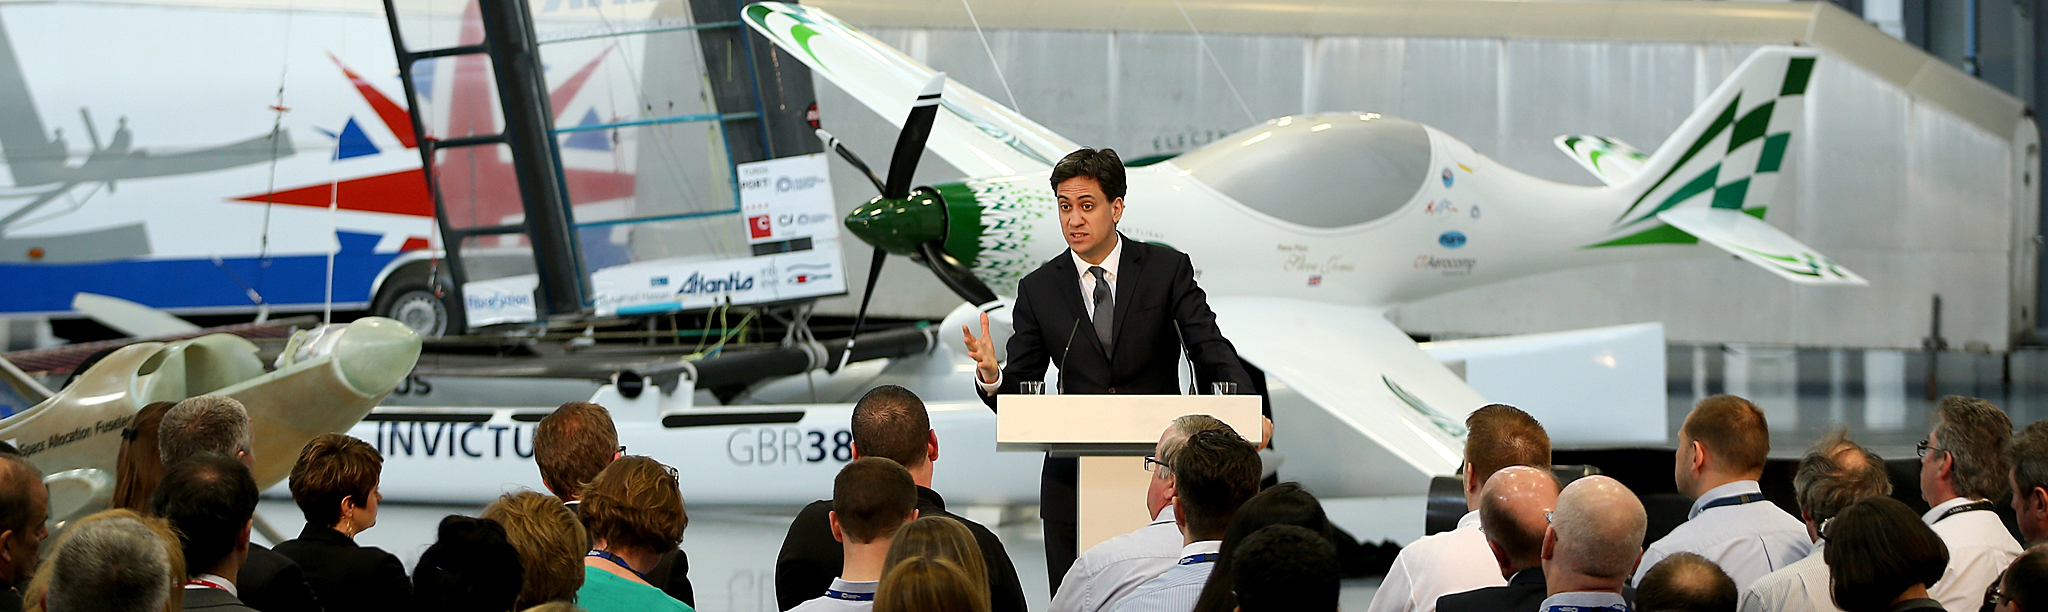 Labour Leader Ed Miliband Campaigns During The Second Week Of The General Election...BRISTOL, UNITED KINGDOM - APRIL 07:  Labour leader Ed Miliband conducts a workplace Q&A session at the NCC, National Composite Centre on April 7, 2015 in Bristol, United Kingdom. Britain goes to the polls for a general election on May 7.  (Photo by Dan Kitwood/Getty Images)